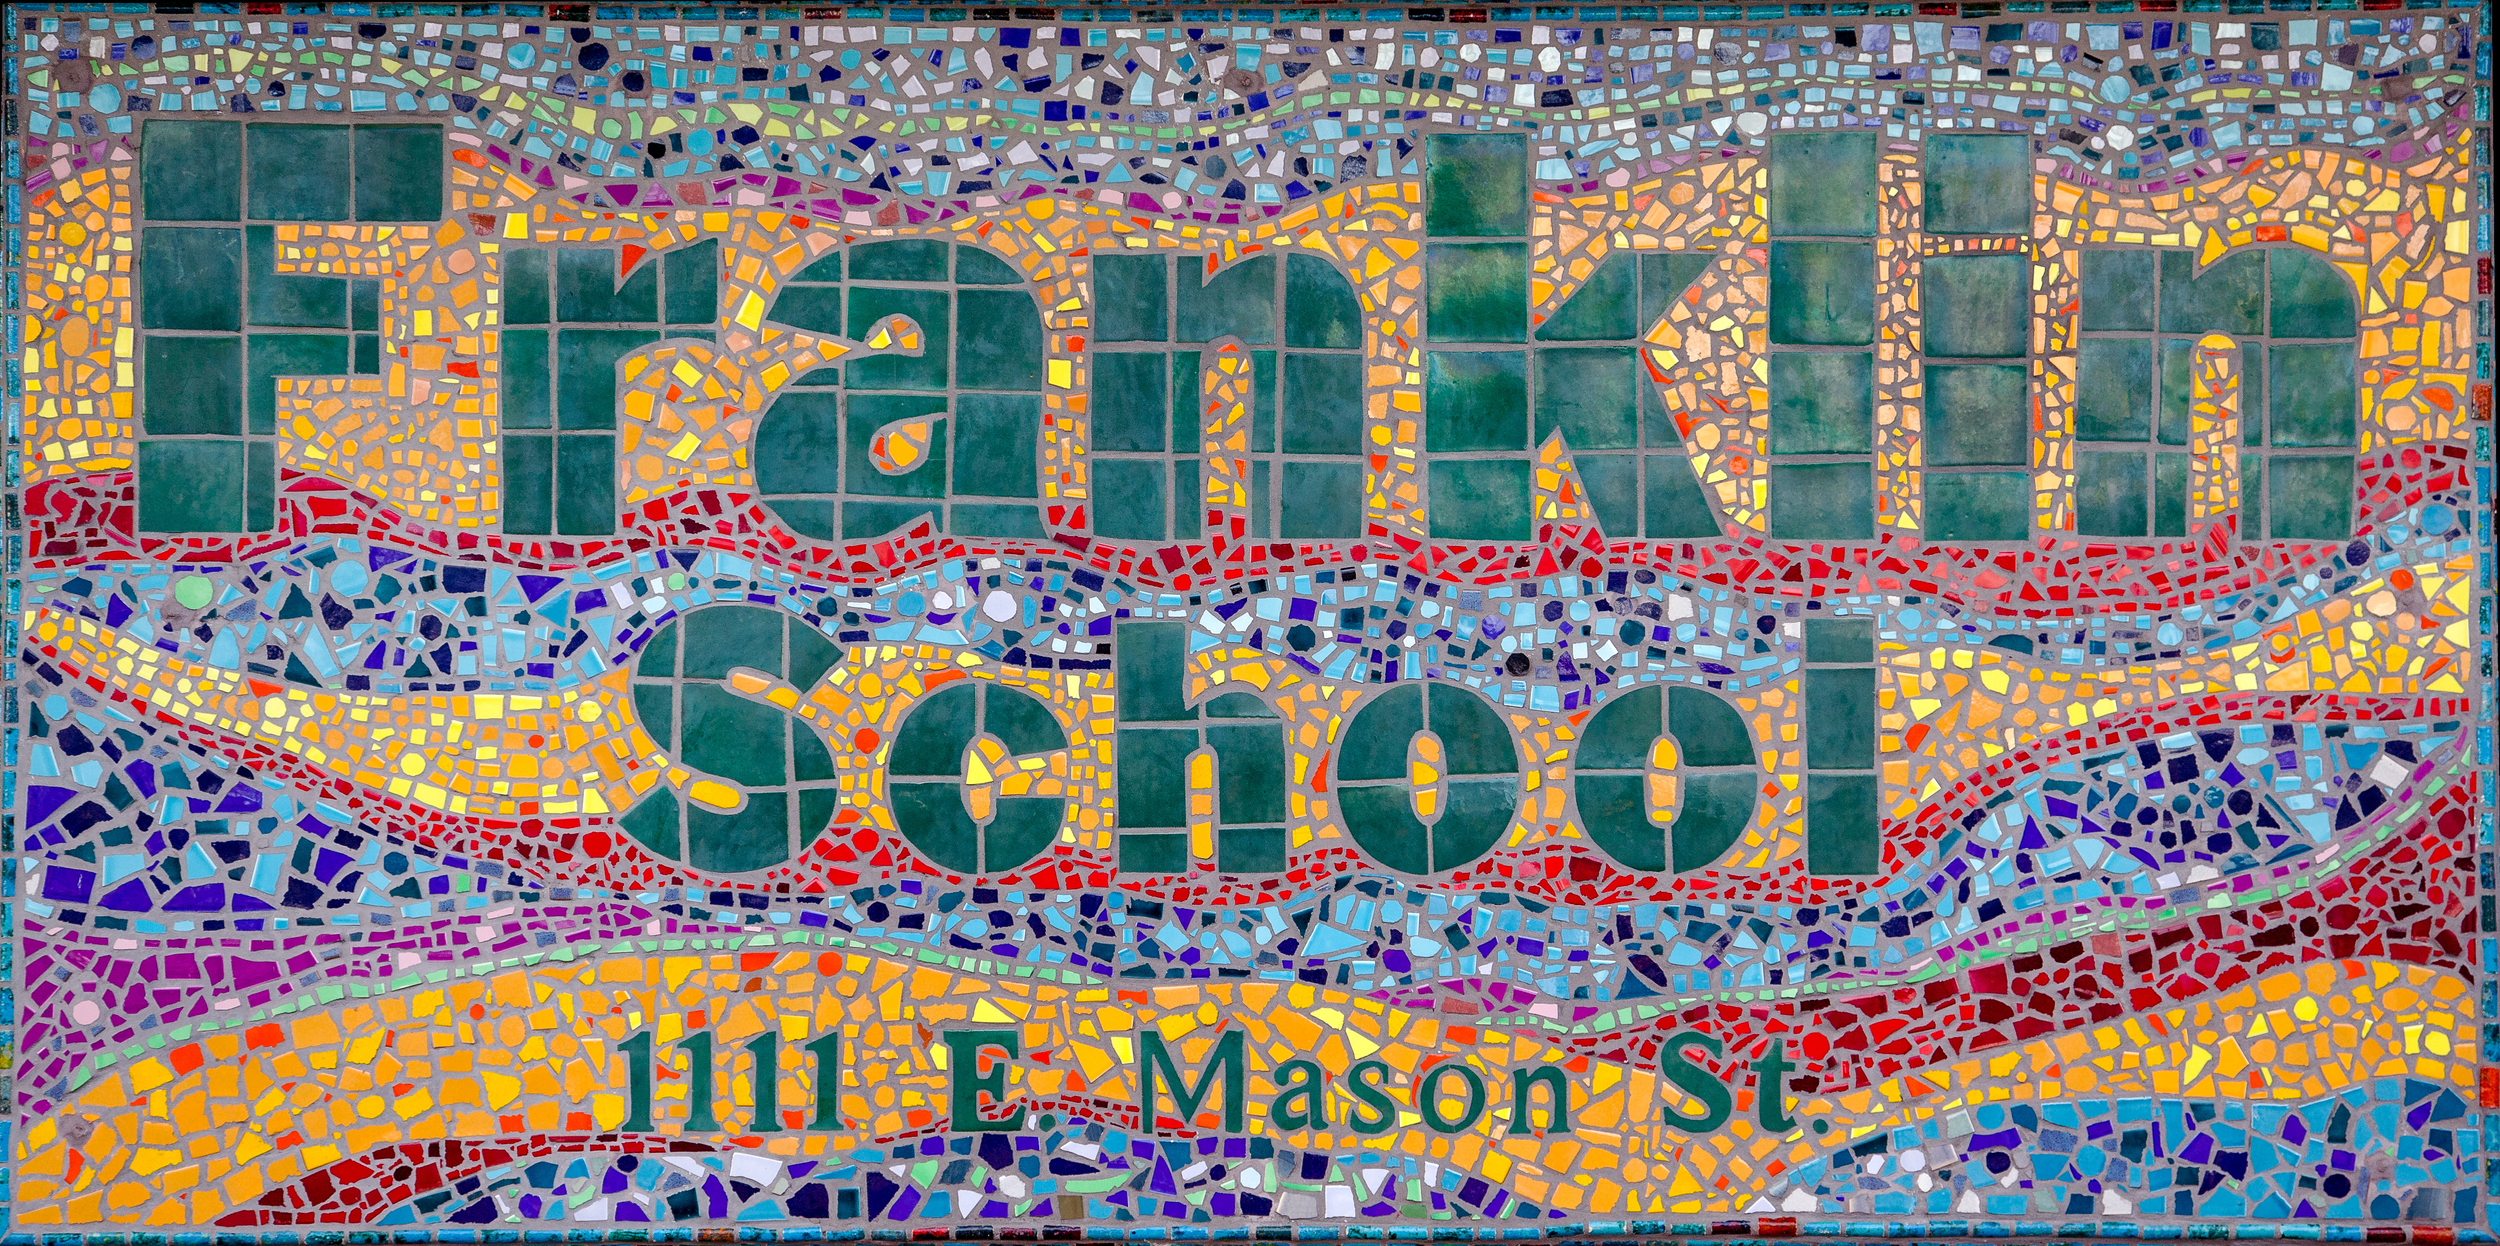 Franklin School Sign. 4x8' Glazed Tiles.